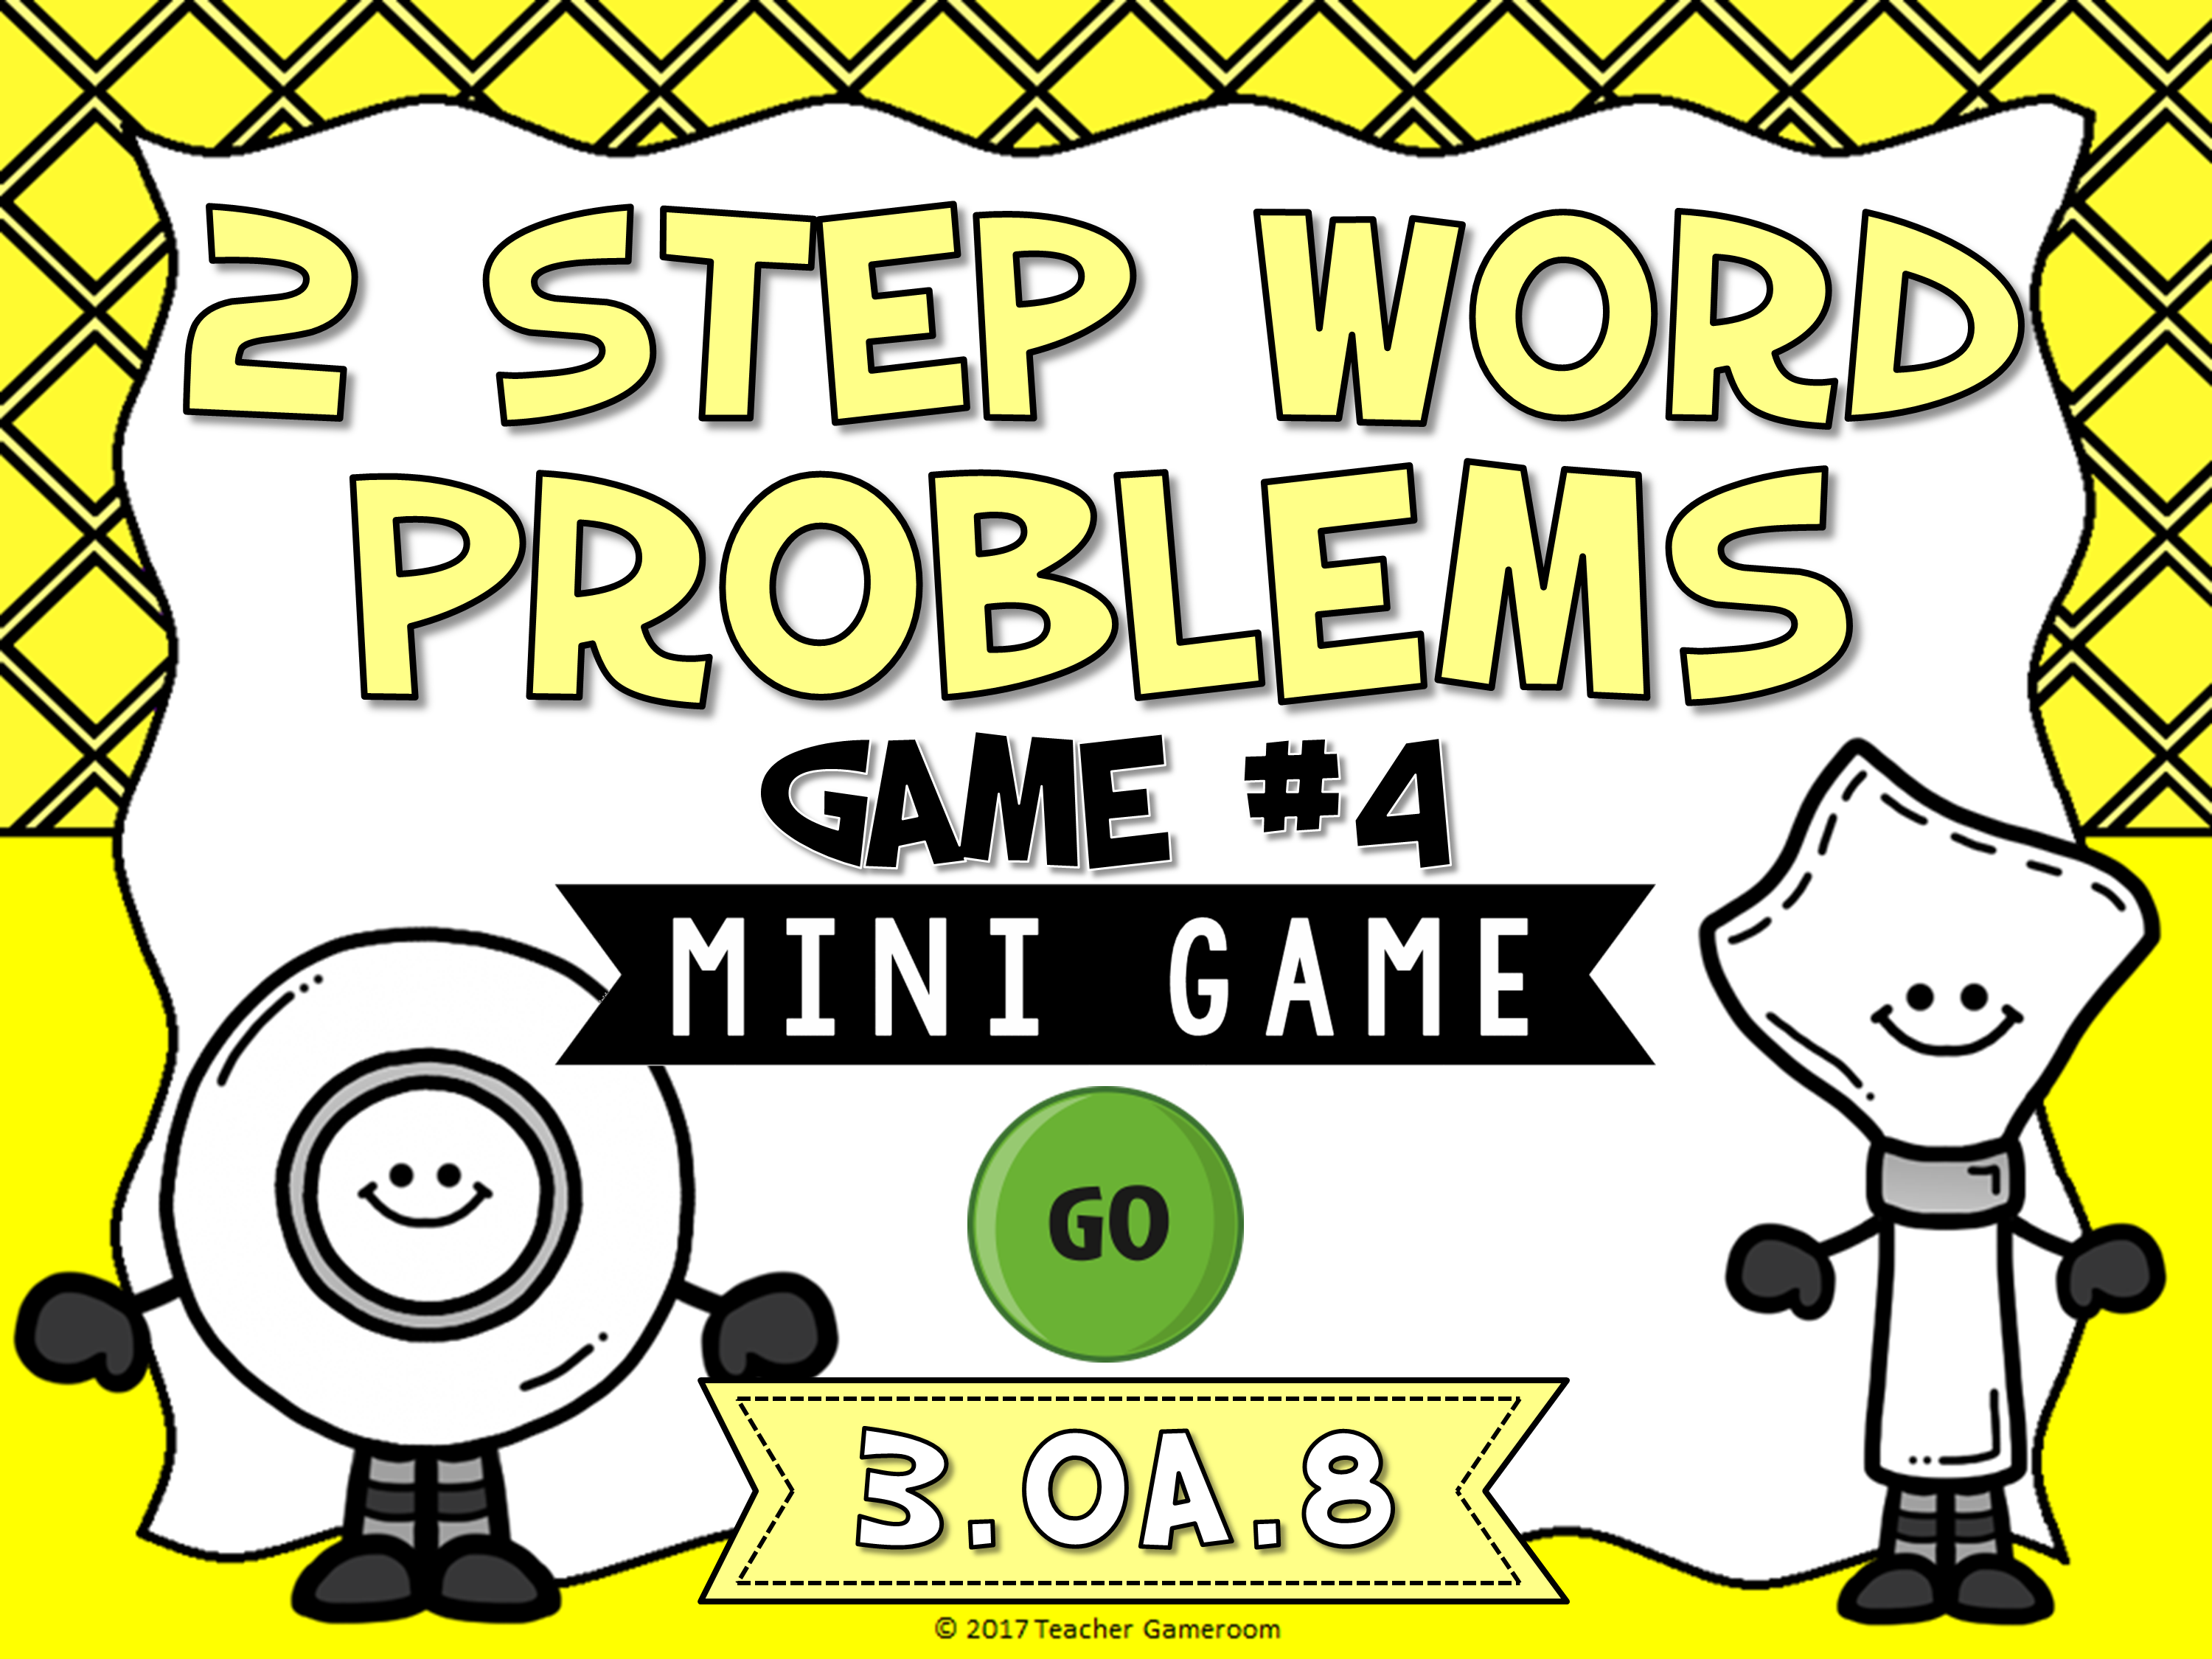 2 Step Words Problems Division Mini Game